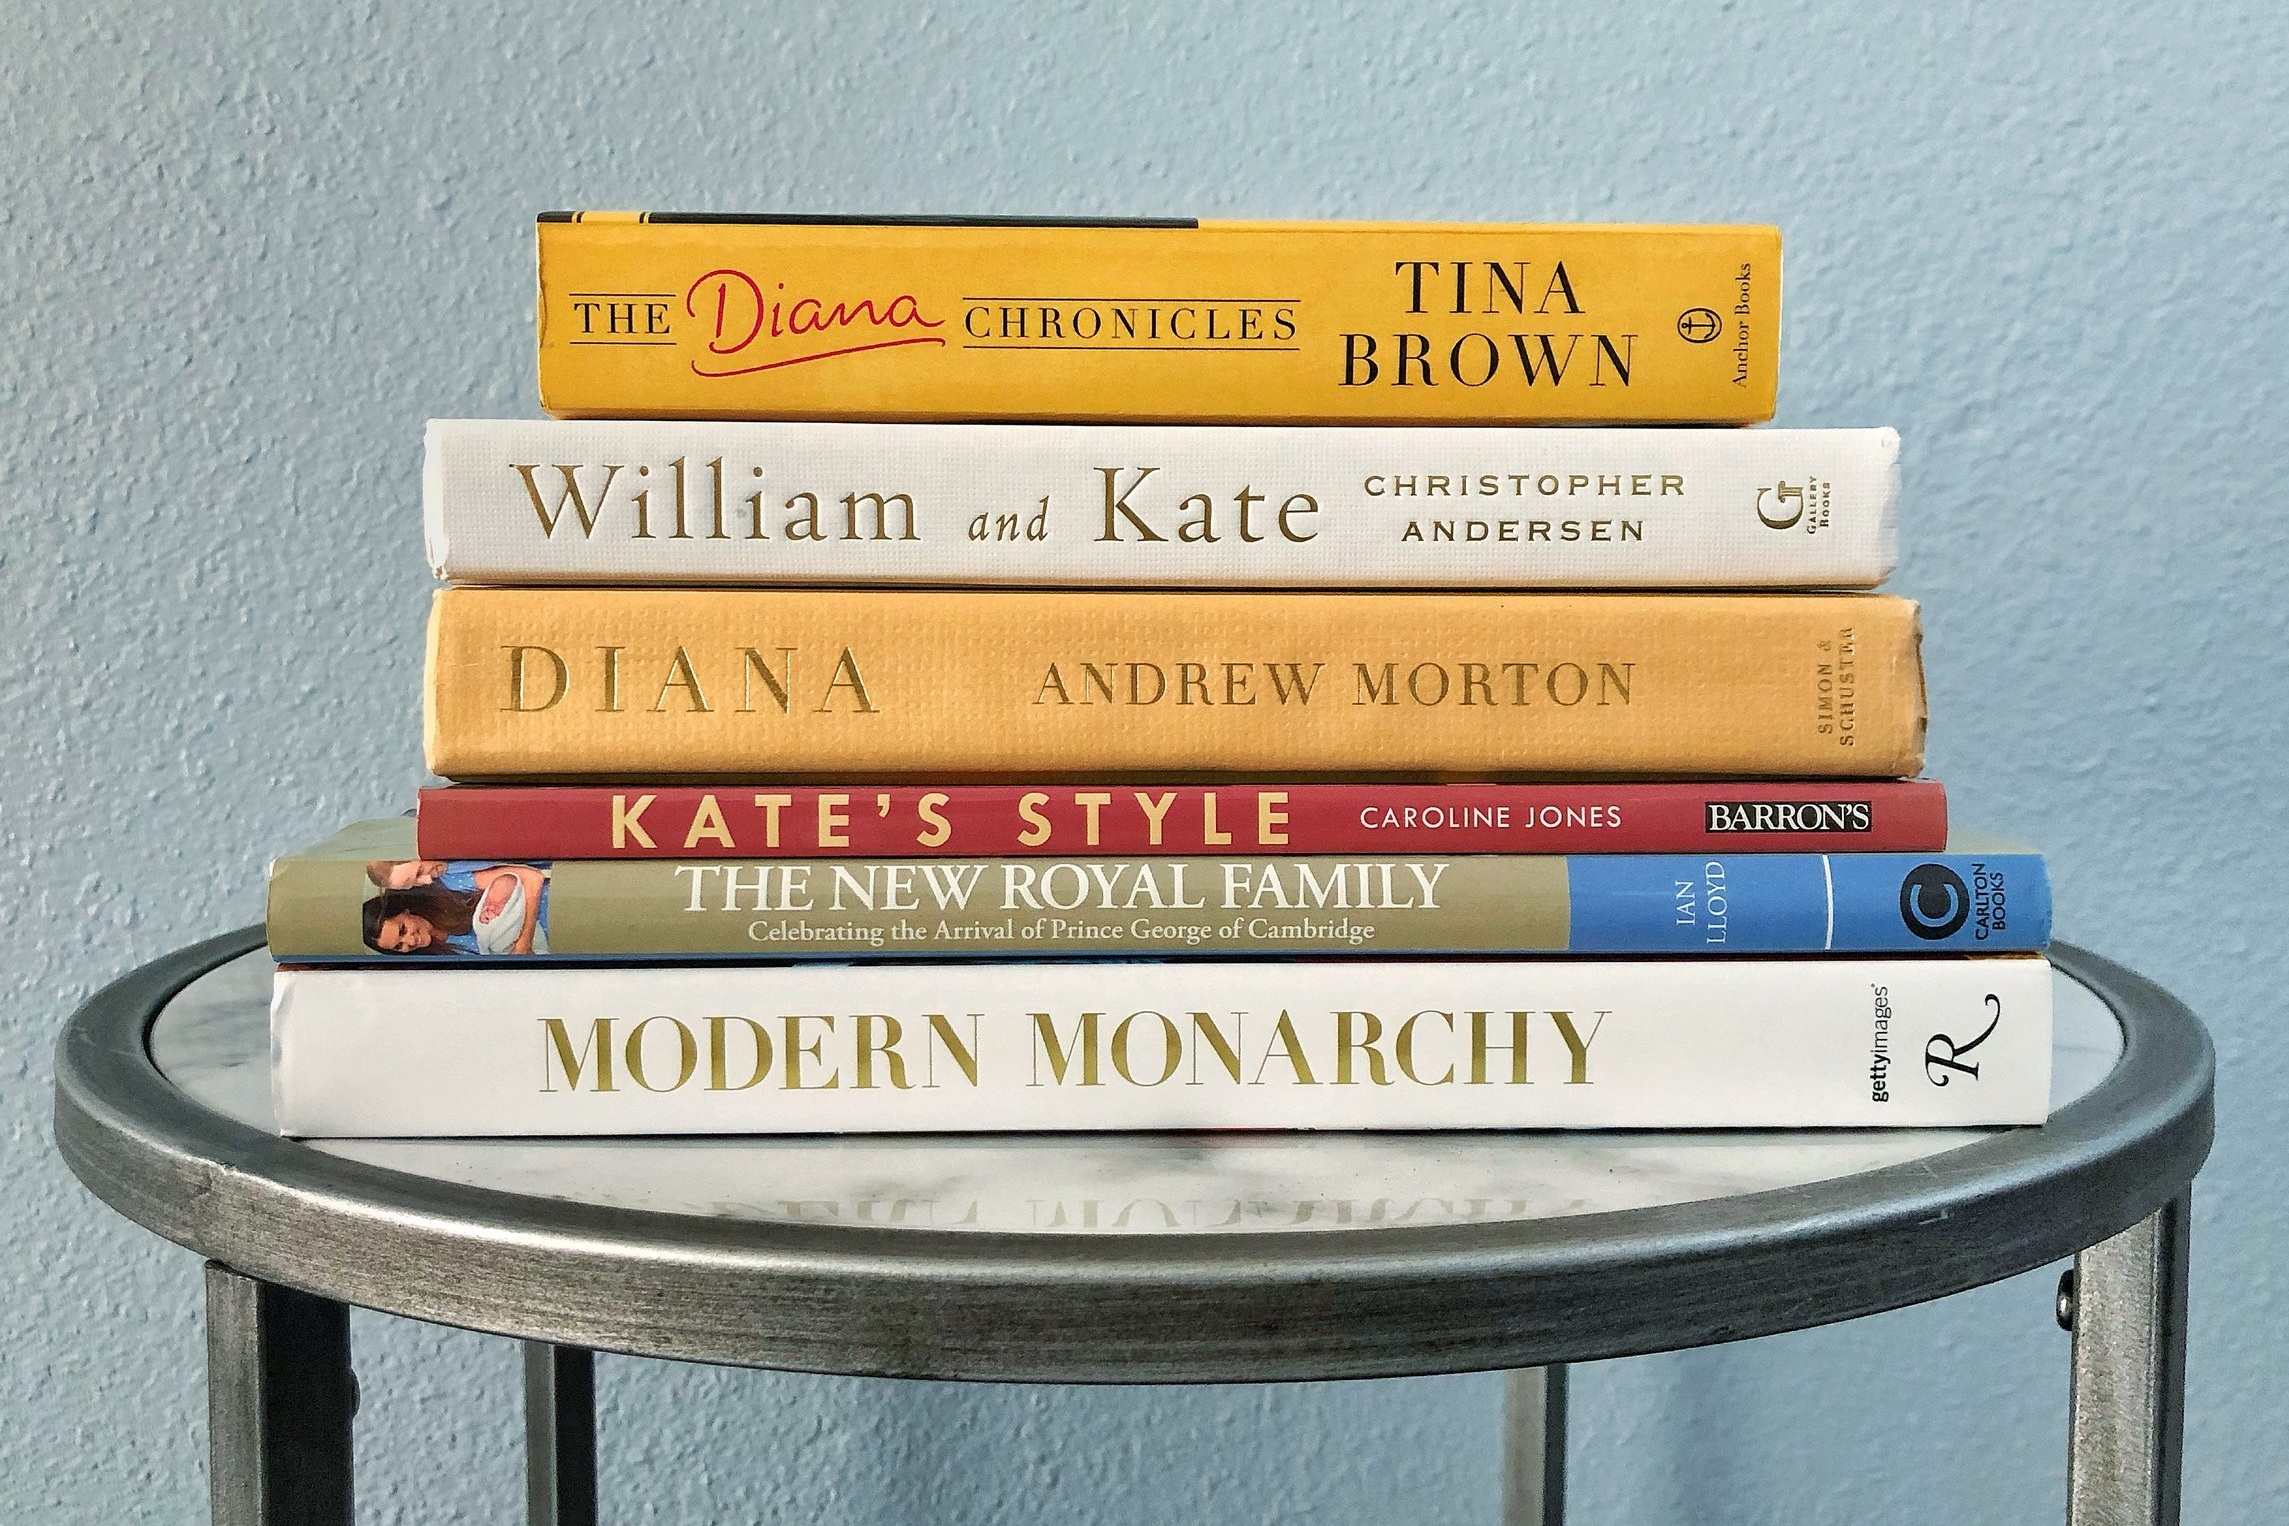 Tops on my list (and stack!) is   The Diana Chronicles   by Tina Brown.